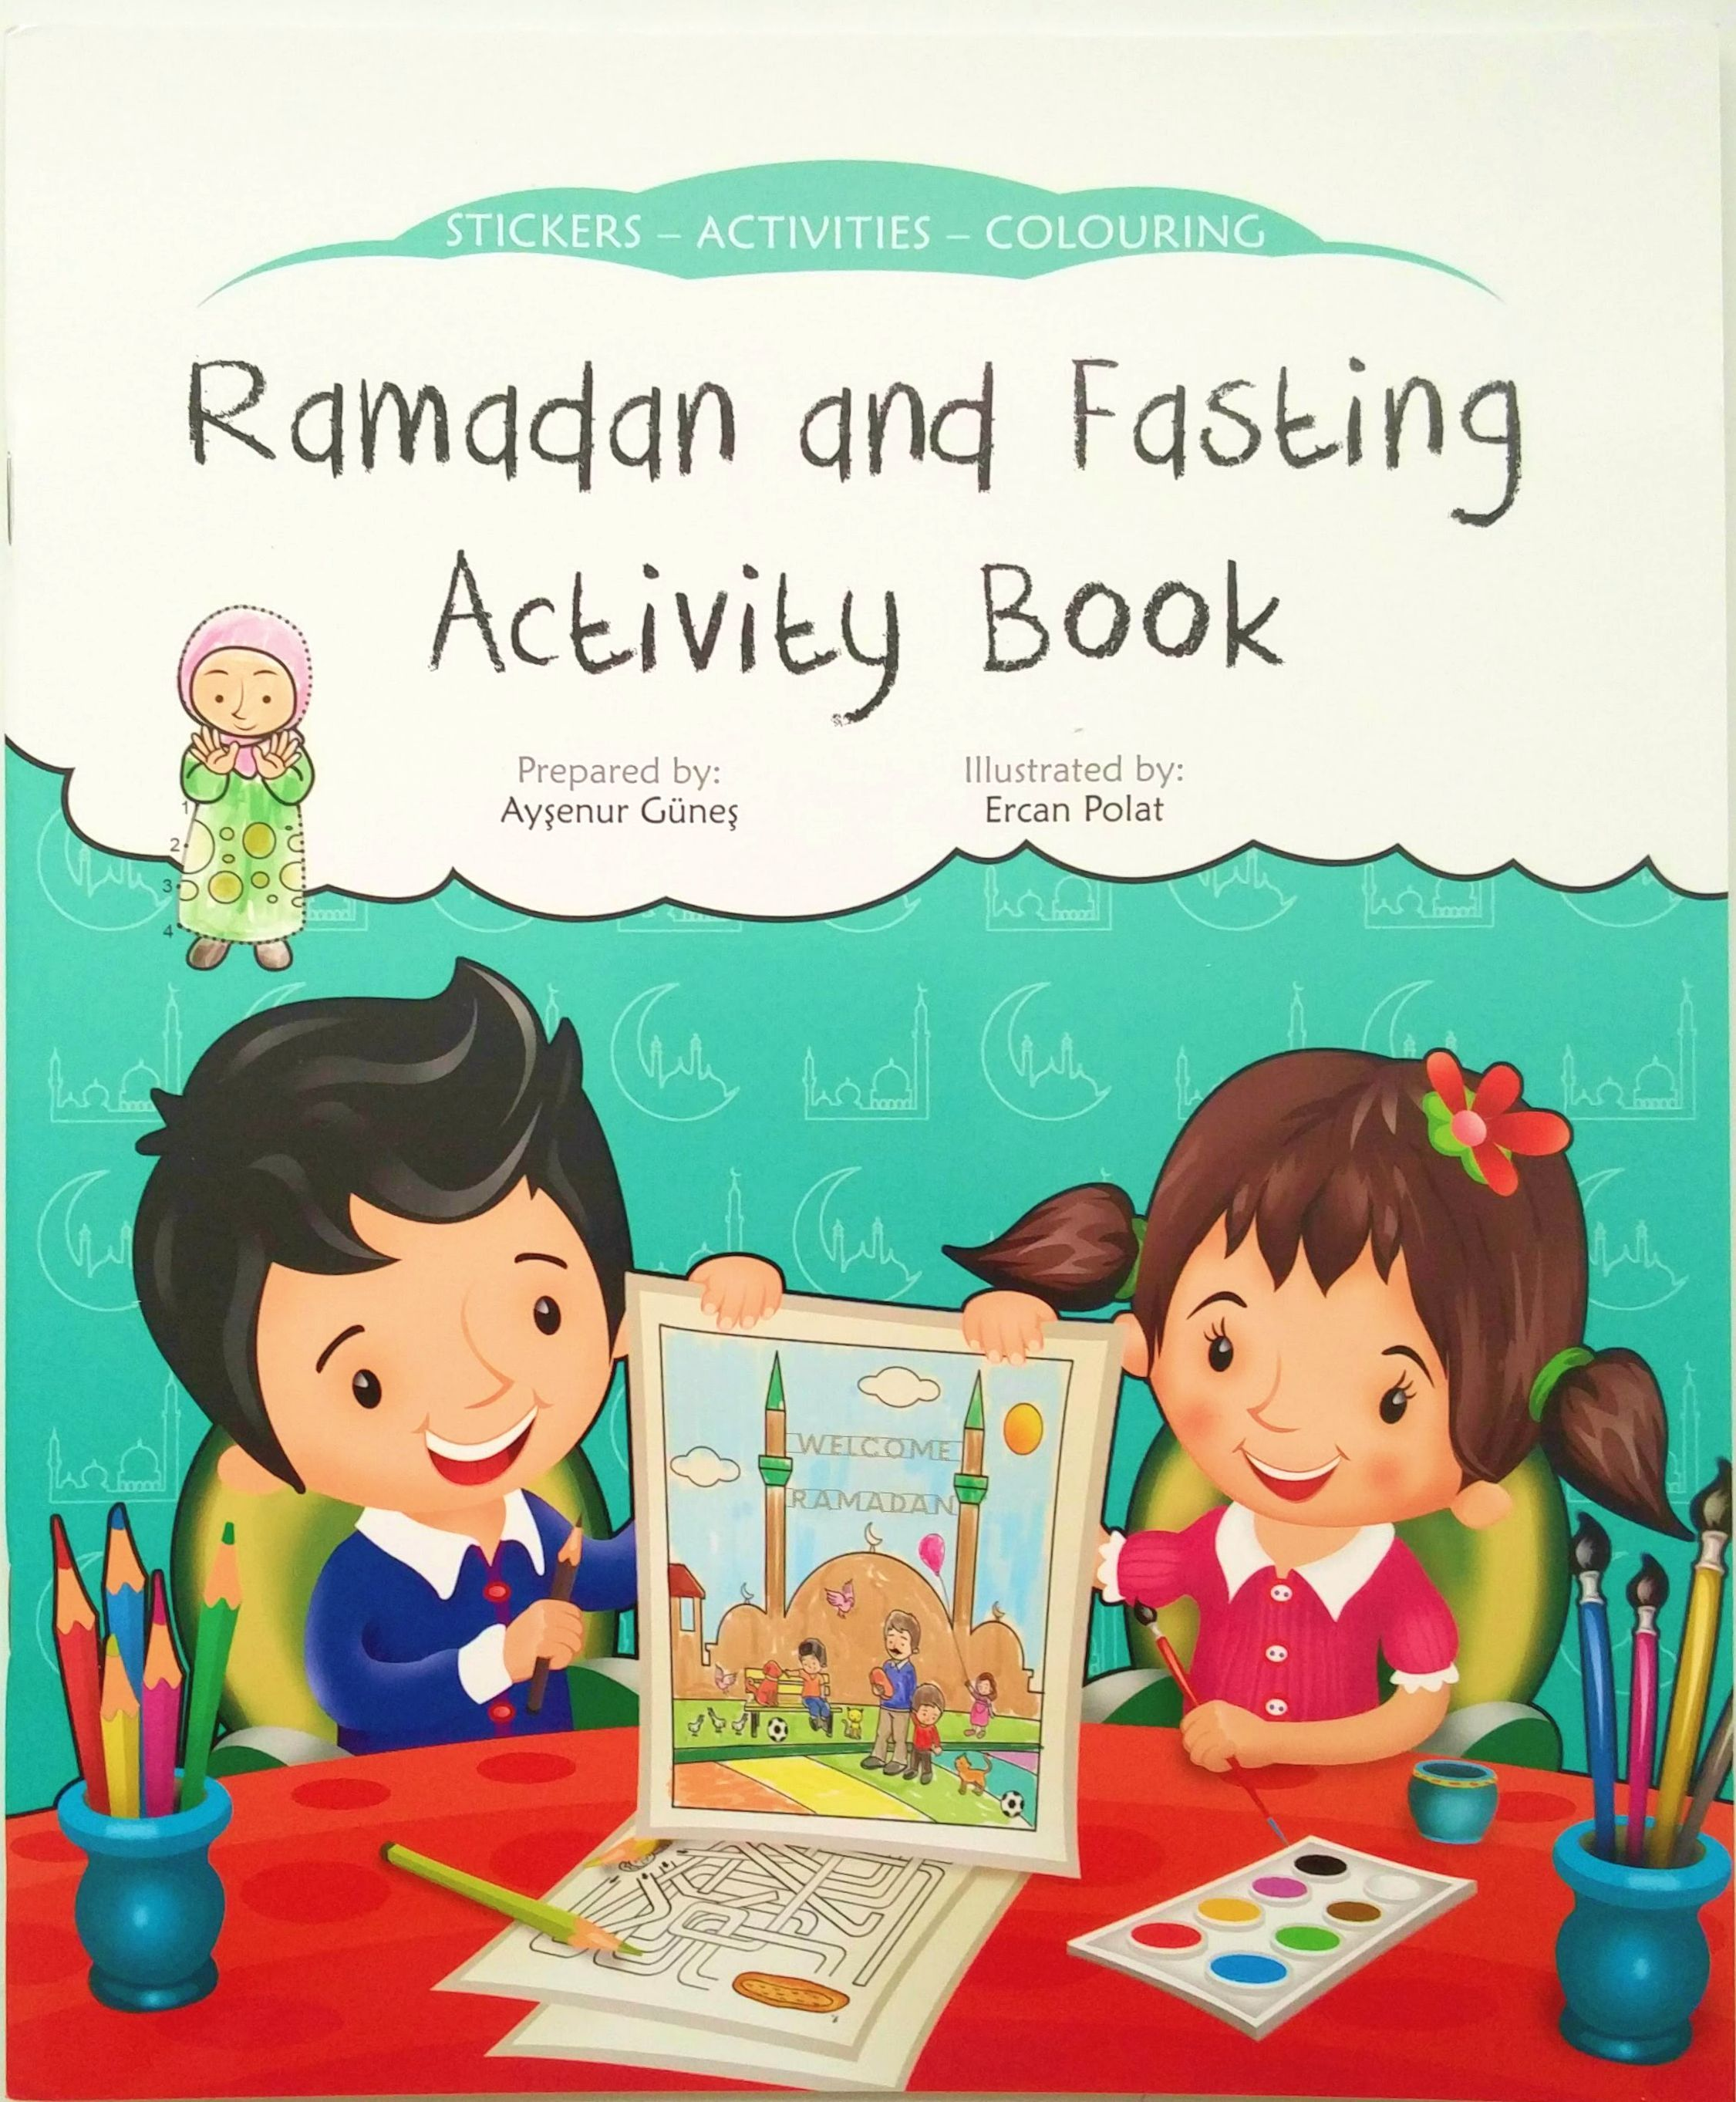 Ramadan Sticker Activity Book Sign Up To The Vip Club To